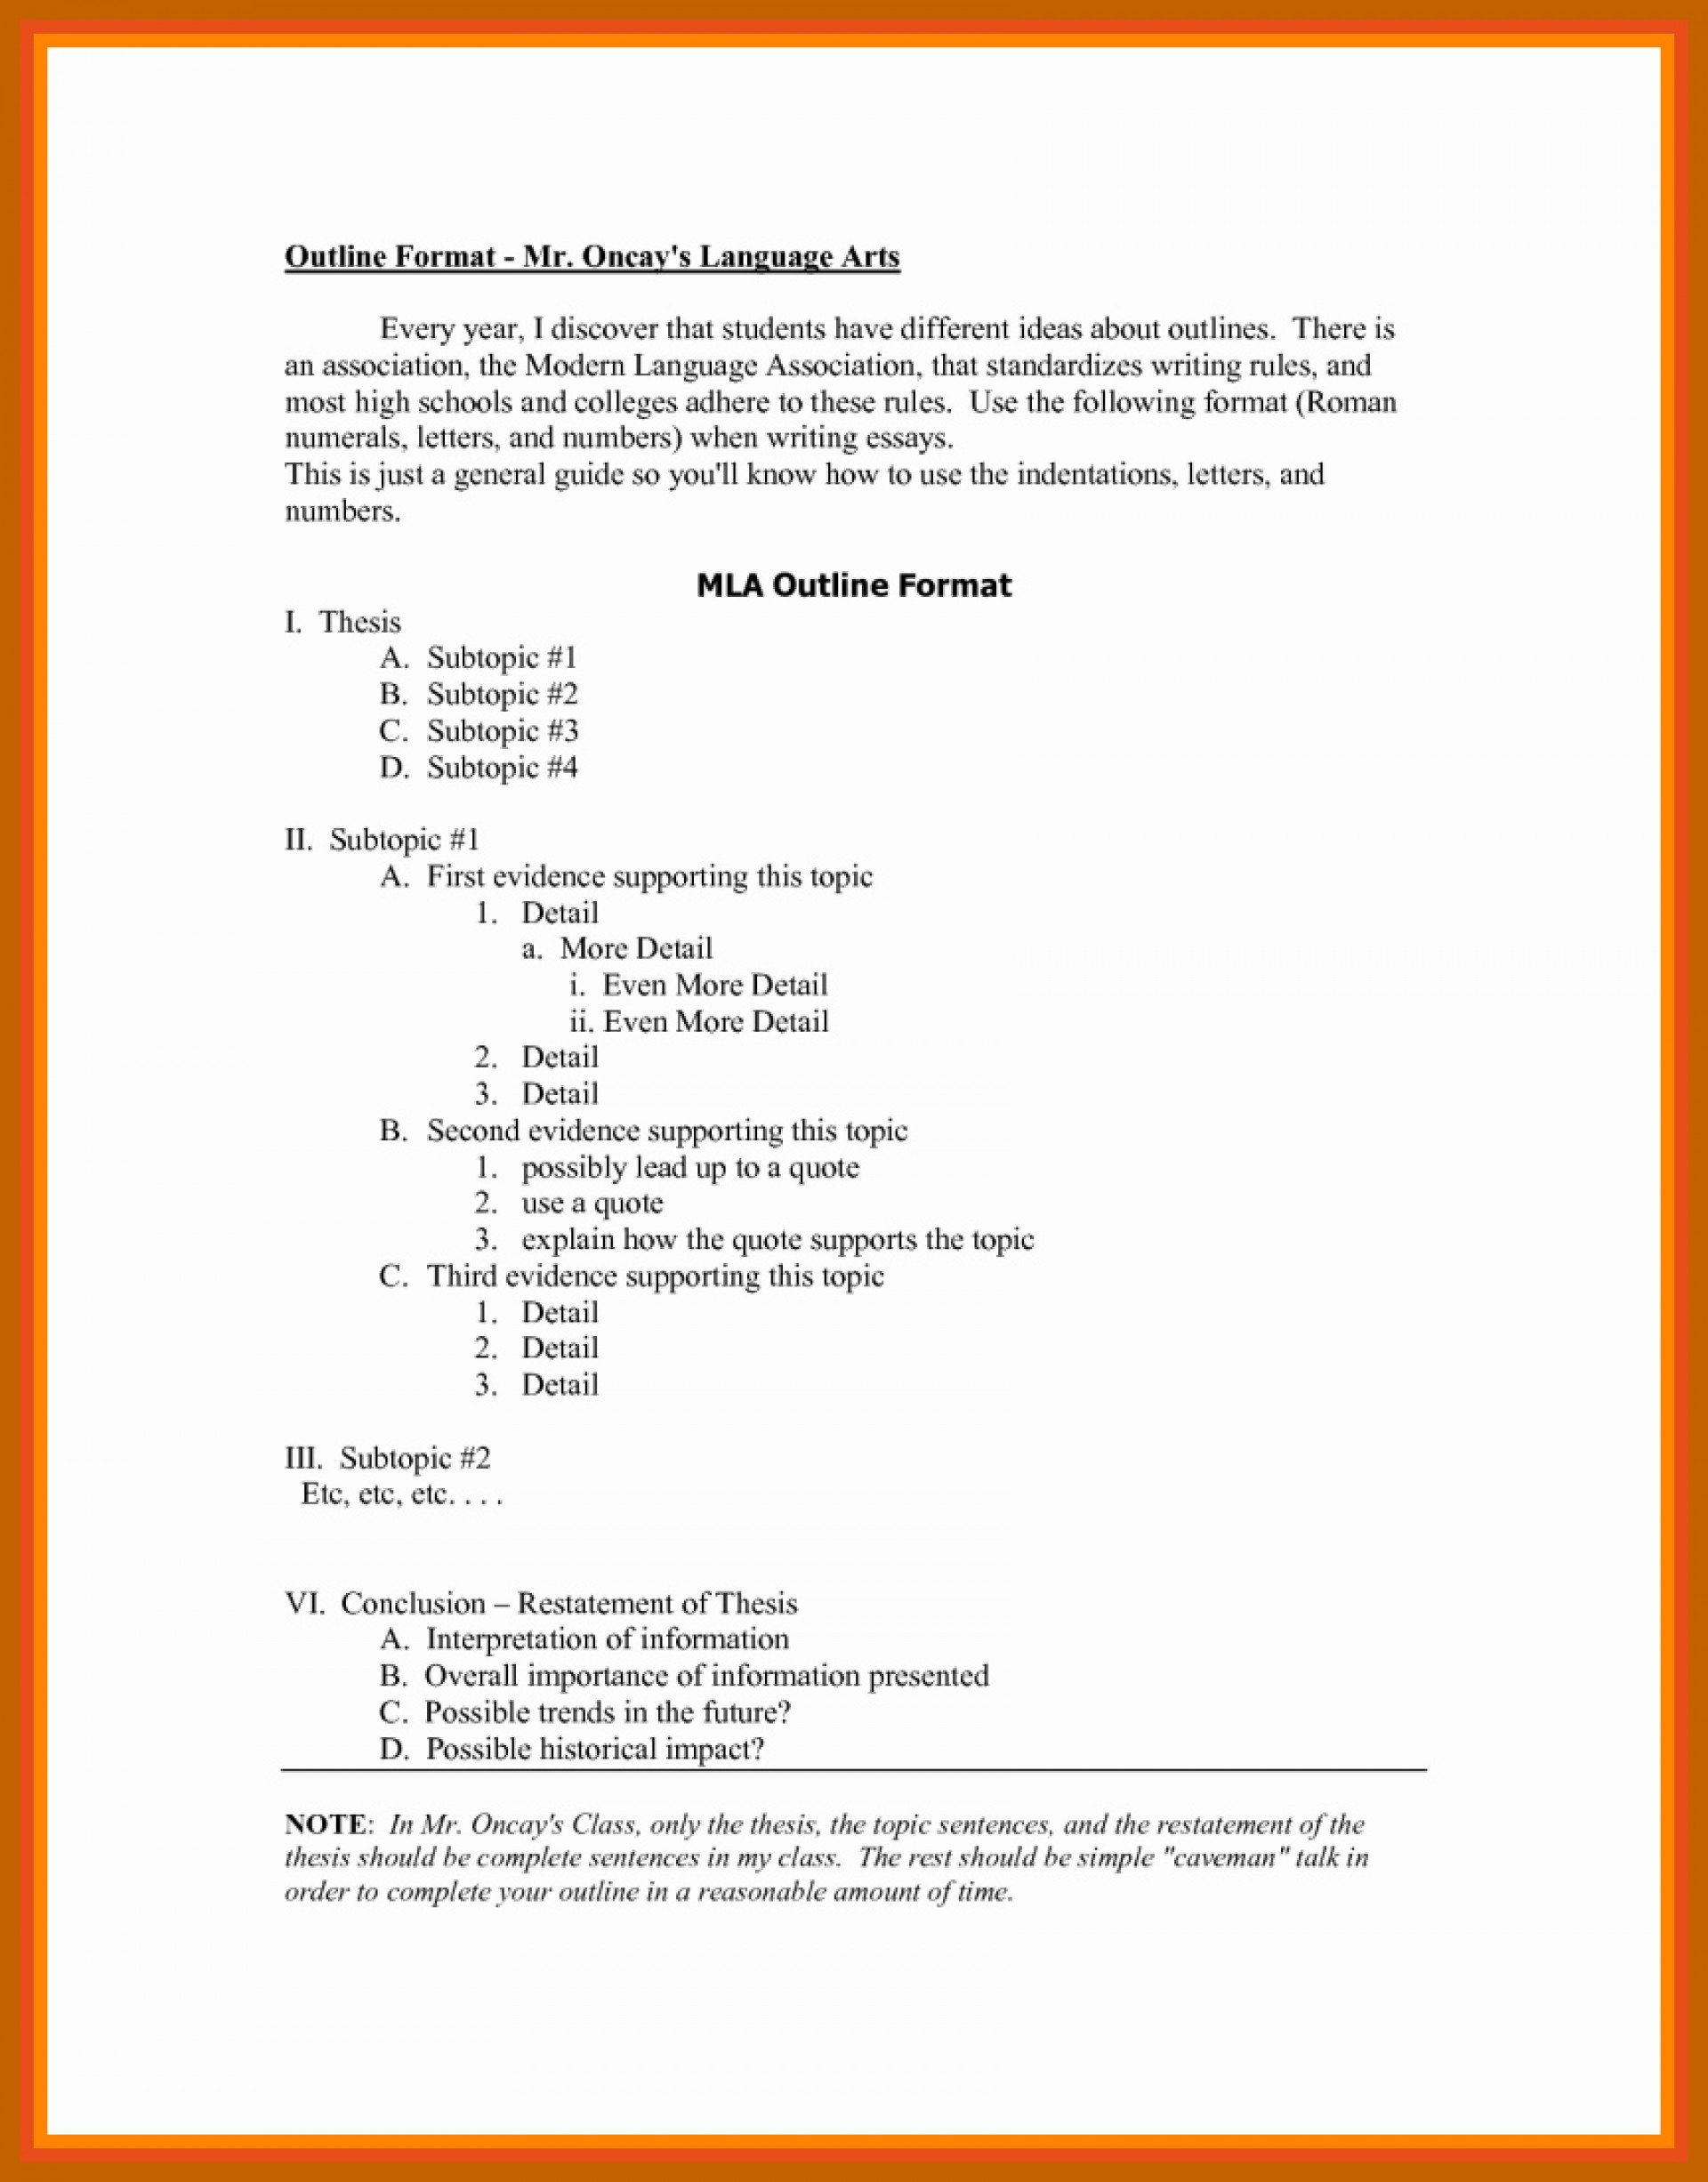 017 Mla Style Research Paper Format Best Of Outline In Magnificent Example 1920